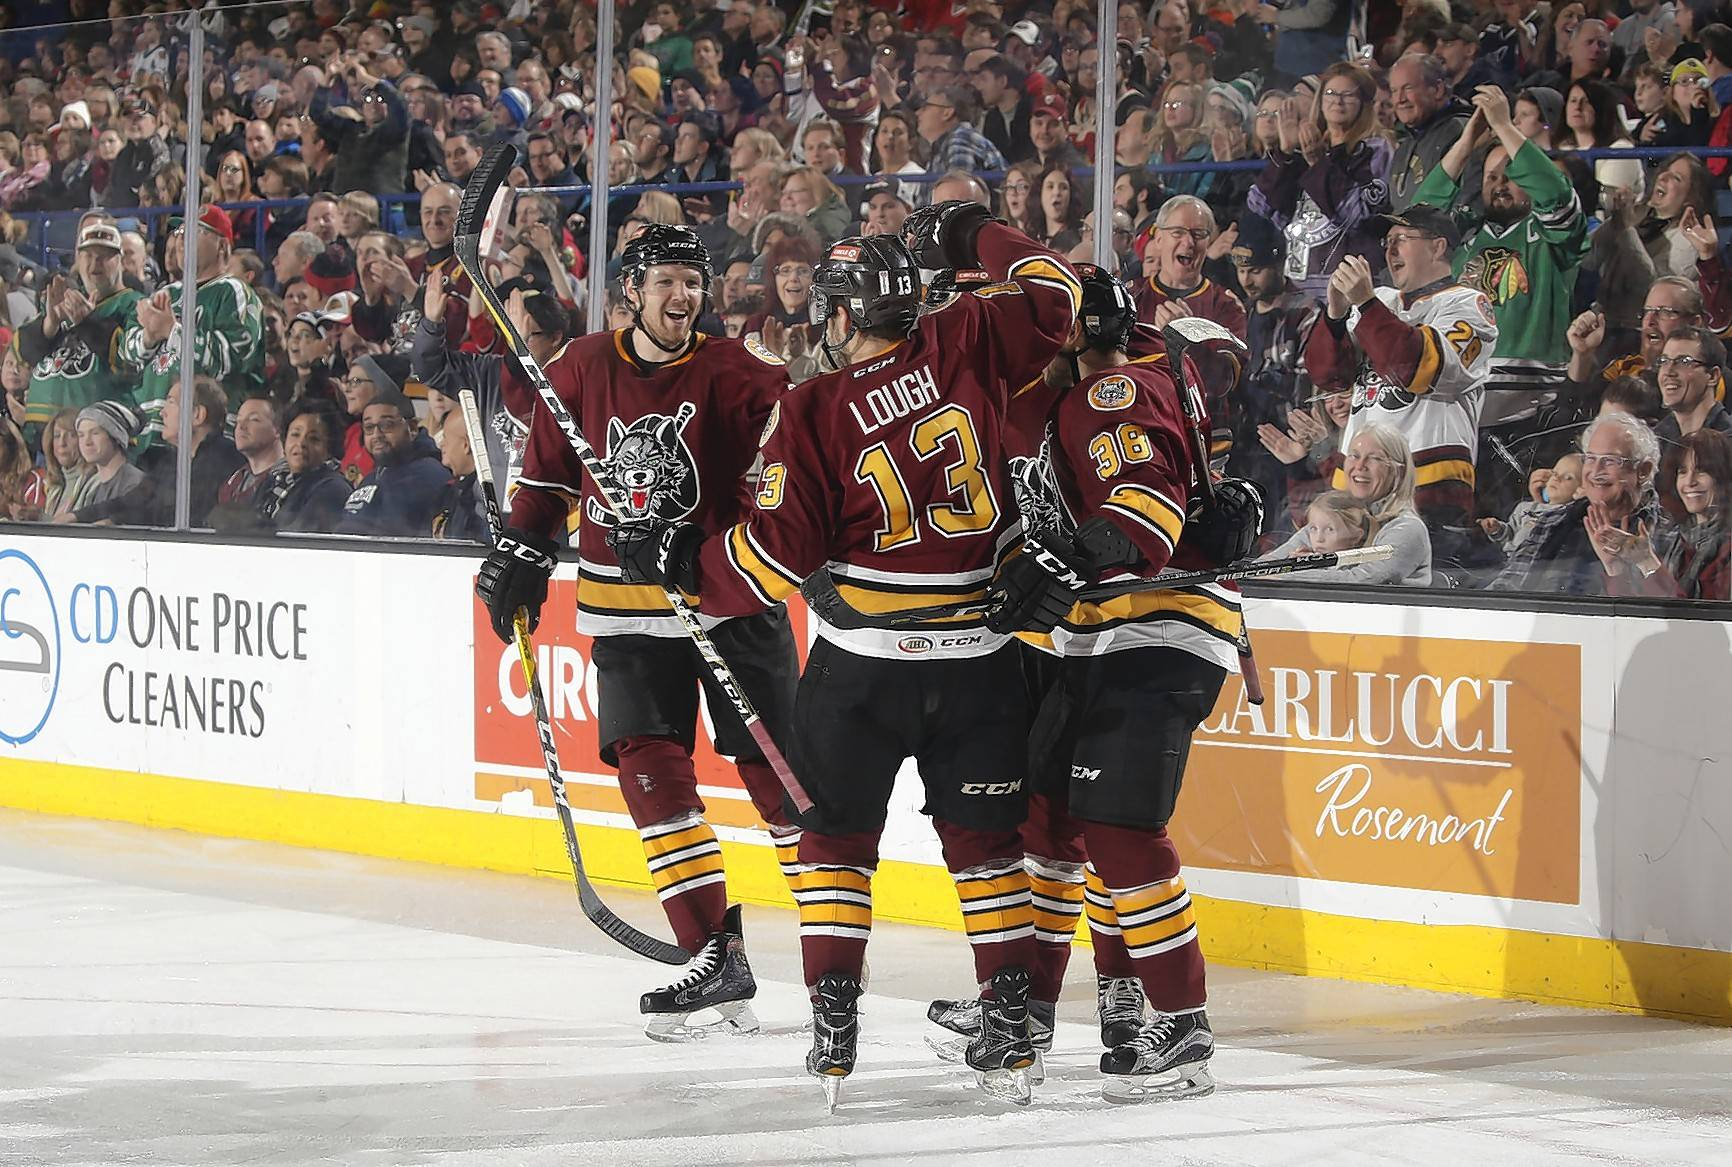 The Chicago Wolves, who play in Rosemont, have been a staple on the local professional sports scene for nearly a quarter-century.